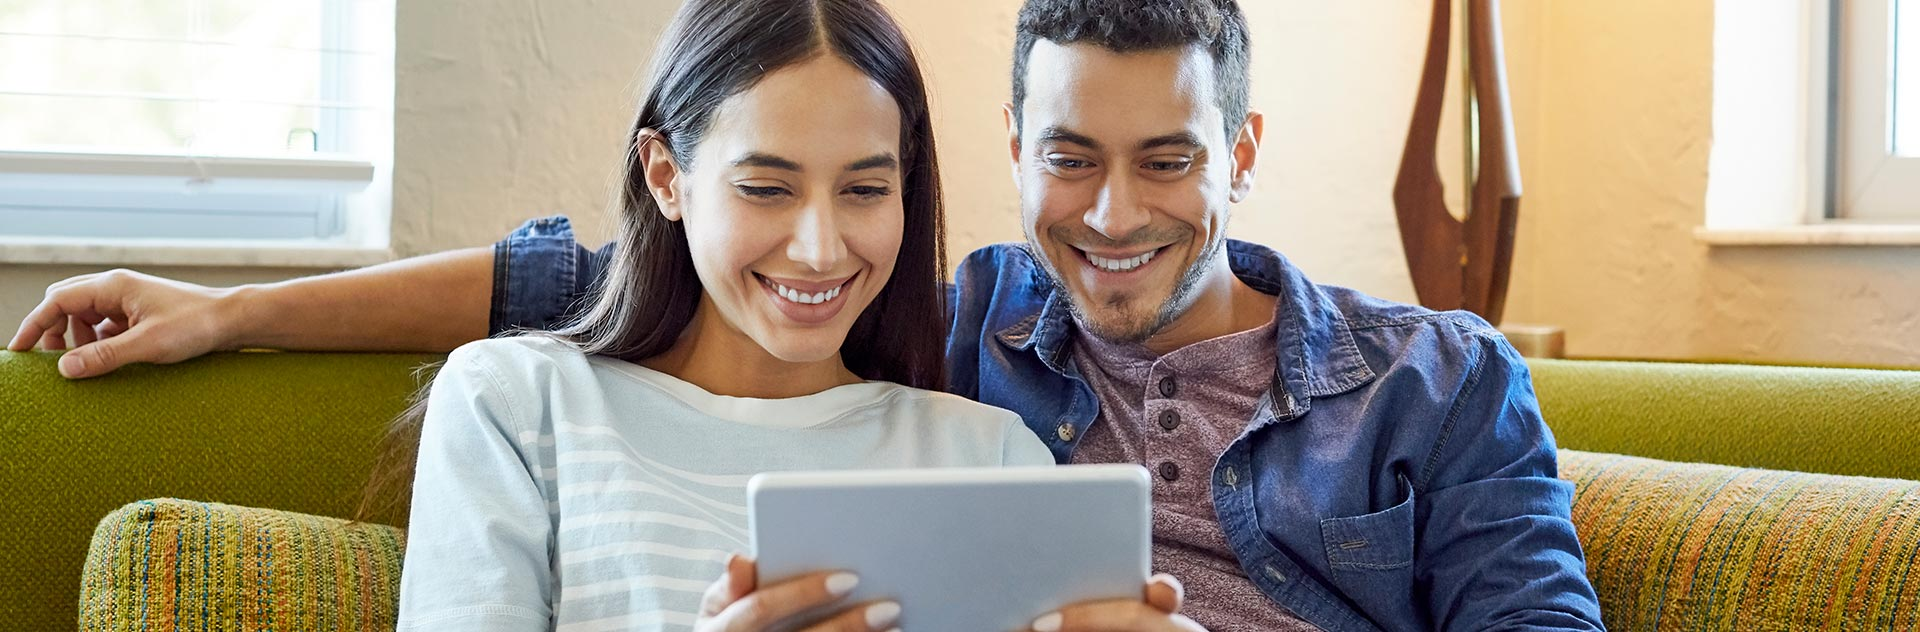 couple on sofa with tablet